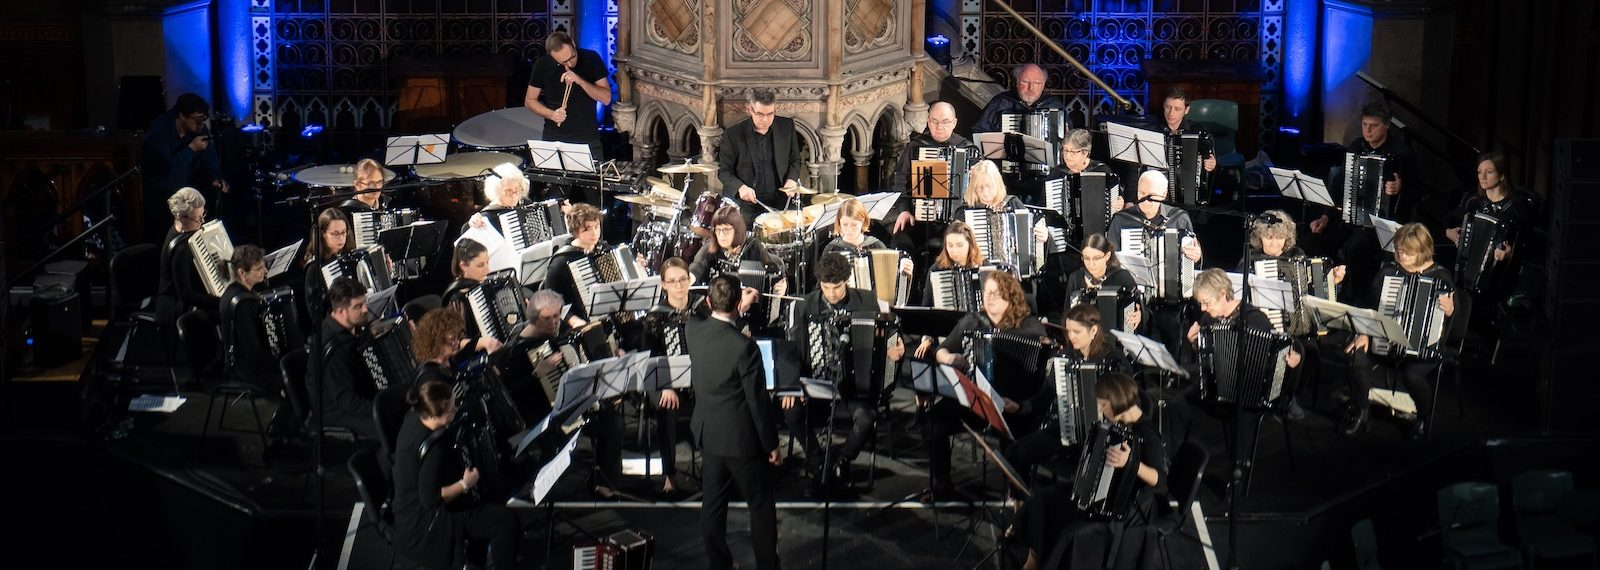 London Accordion Orchestra in concert at Union Chapel in front of blue lights